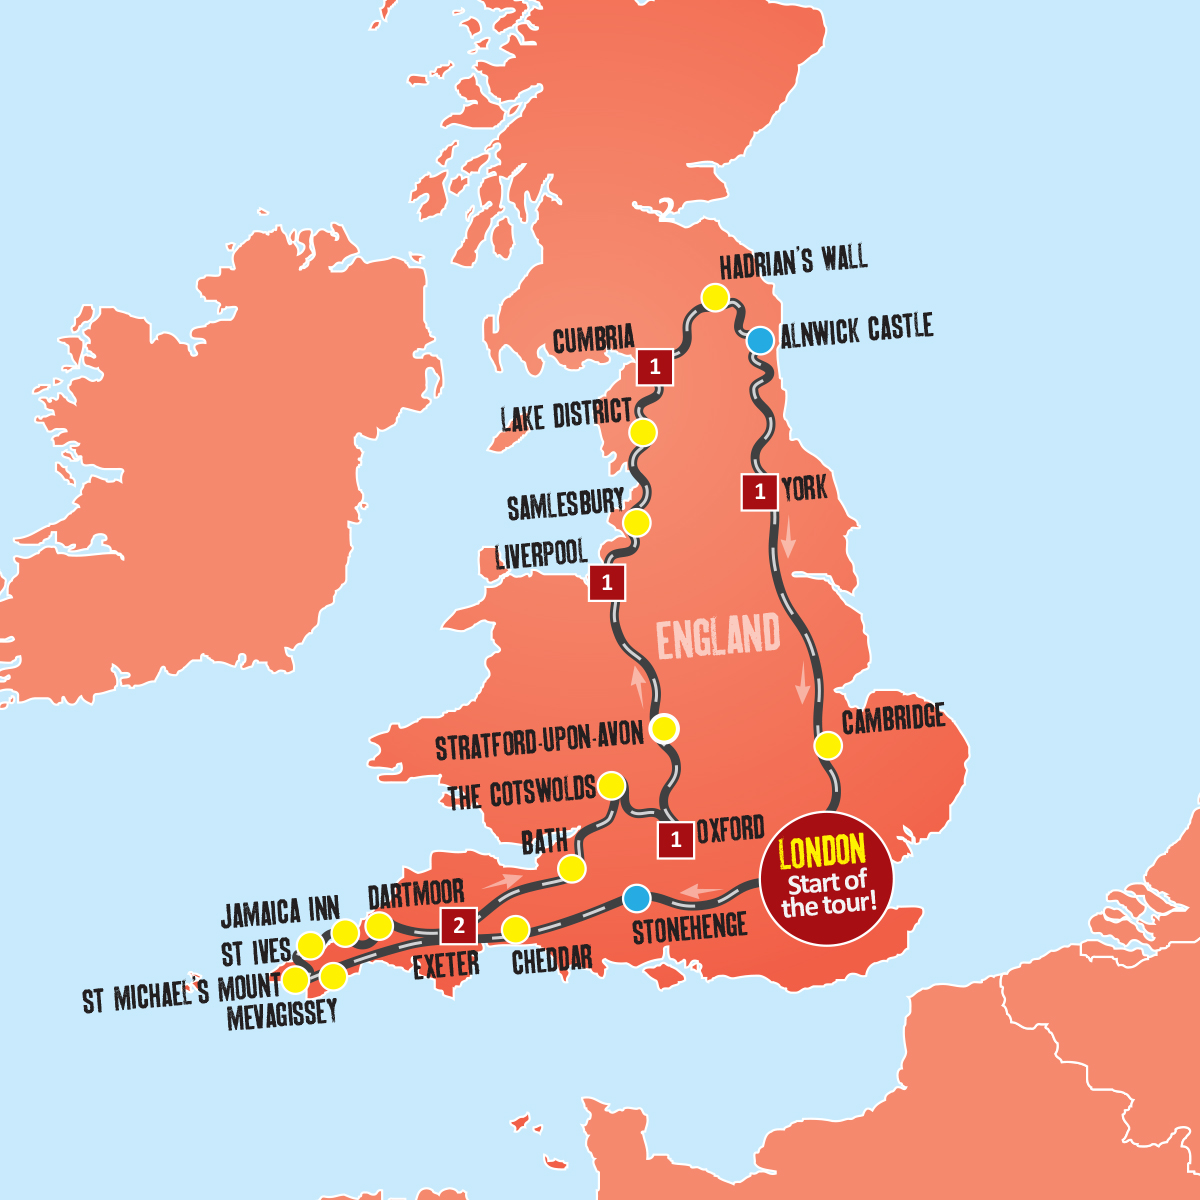 Harry Potter Map Of England.England Holidays England Vacation Packages Expat Explore Travel